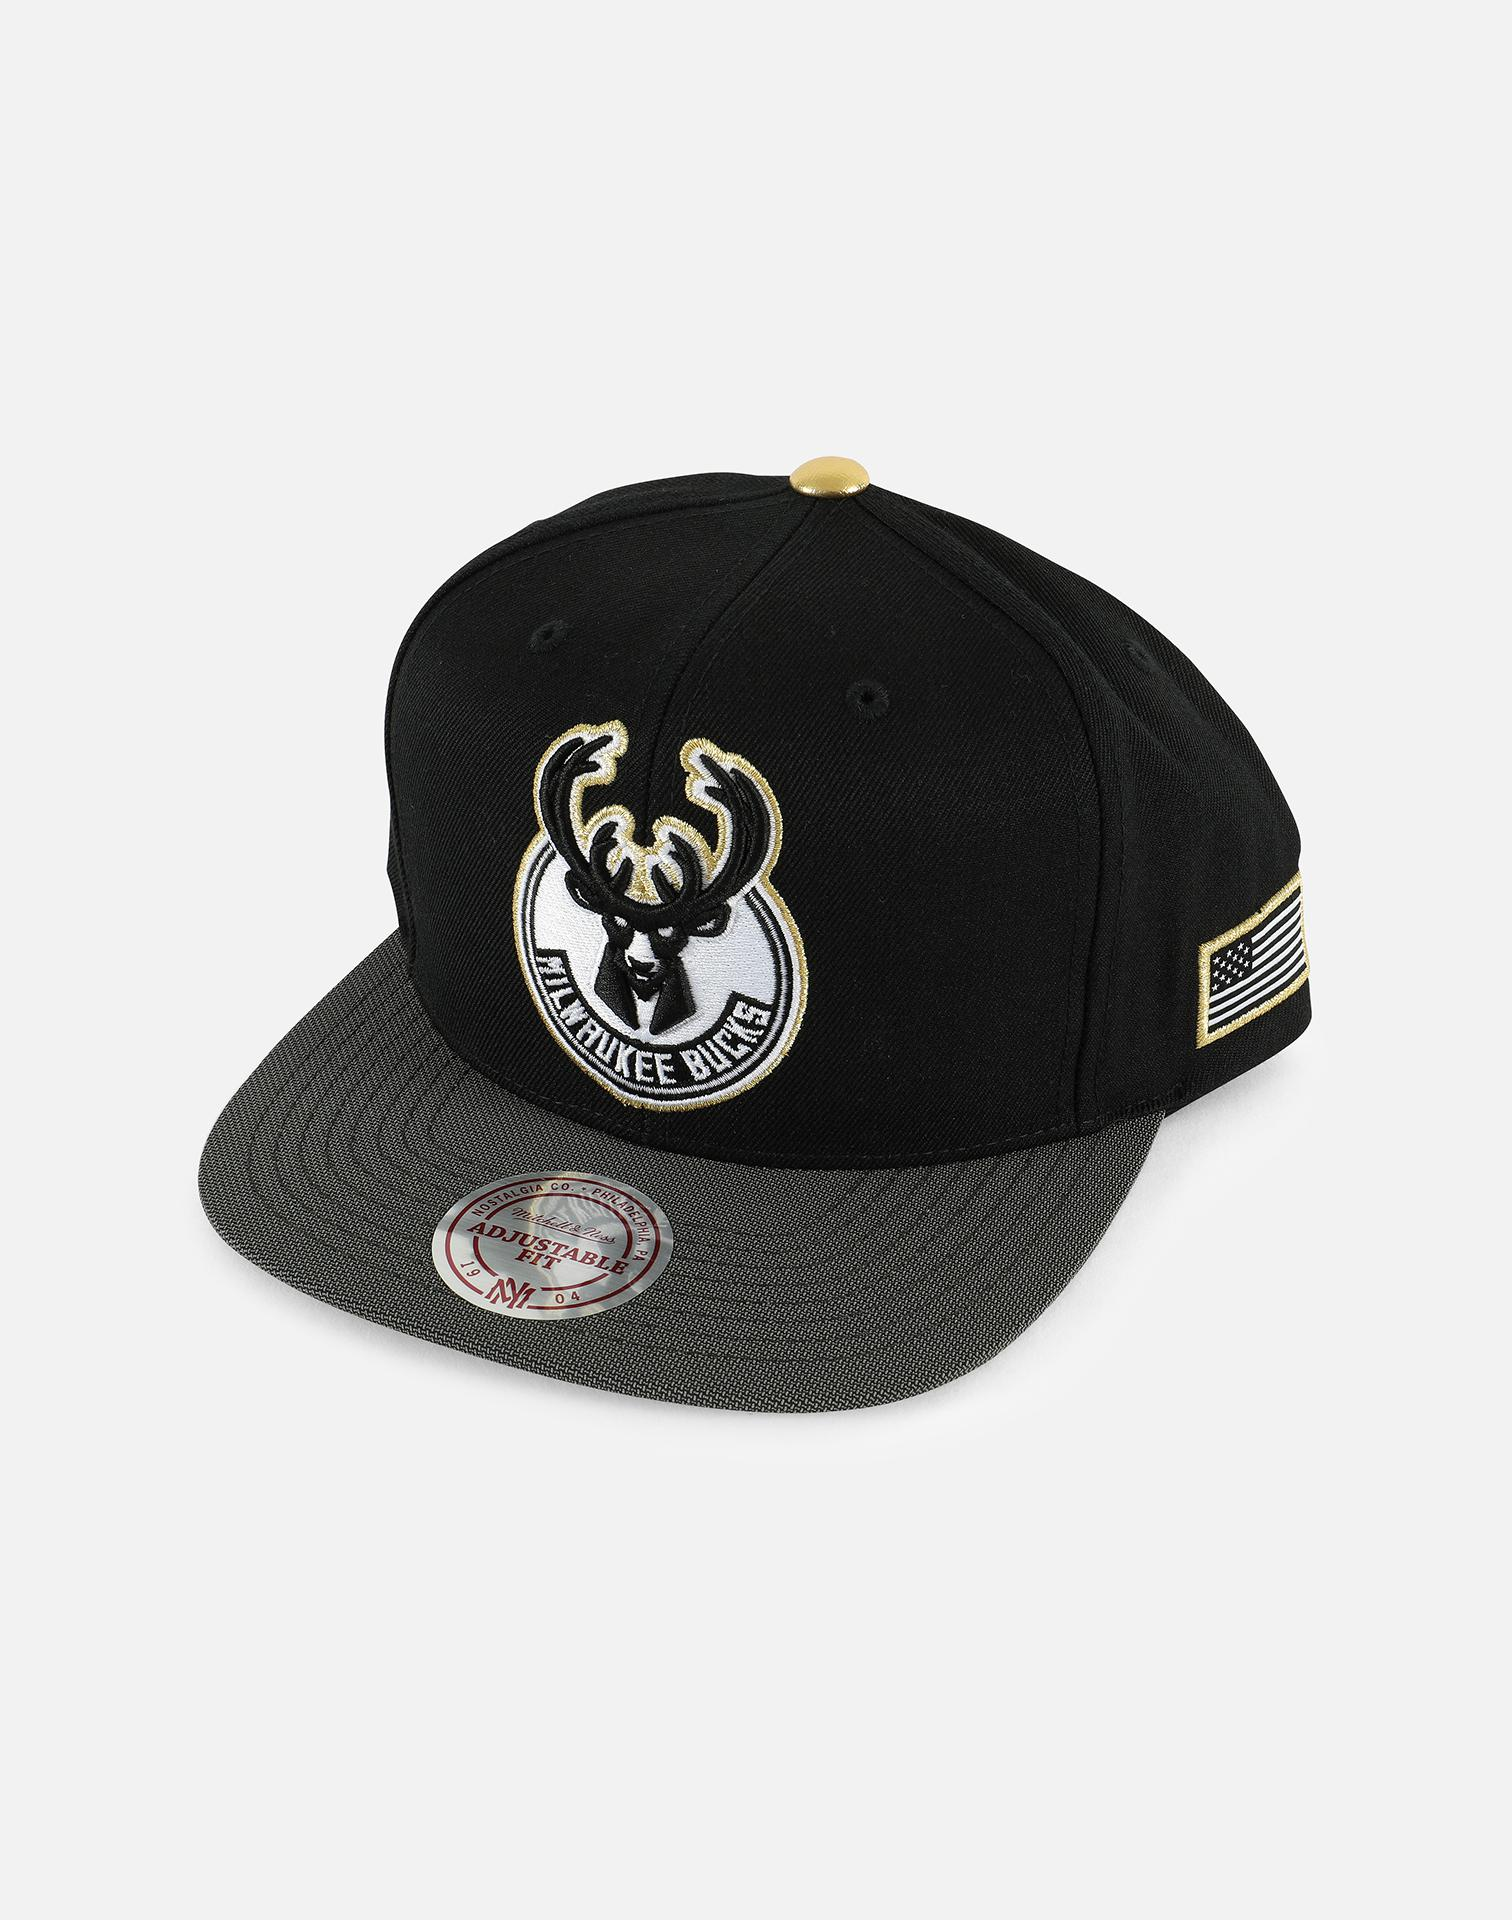 ... spain mitchell ness. mens black milwaukee bucks gold tip snapback hat  36ee4 cb1d2 55a4ee2da63c